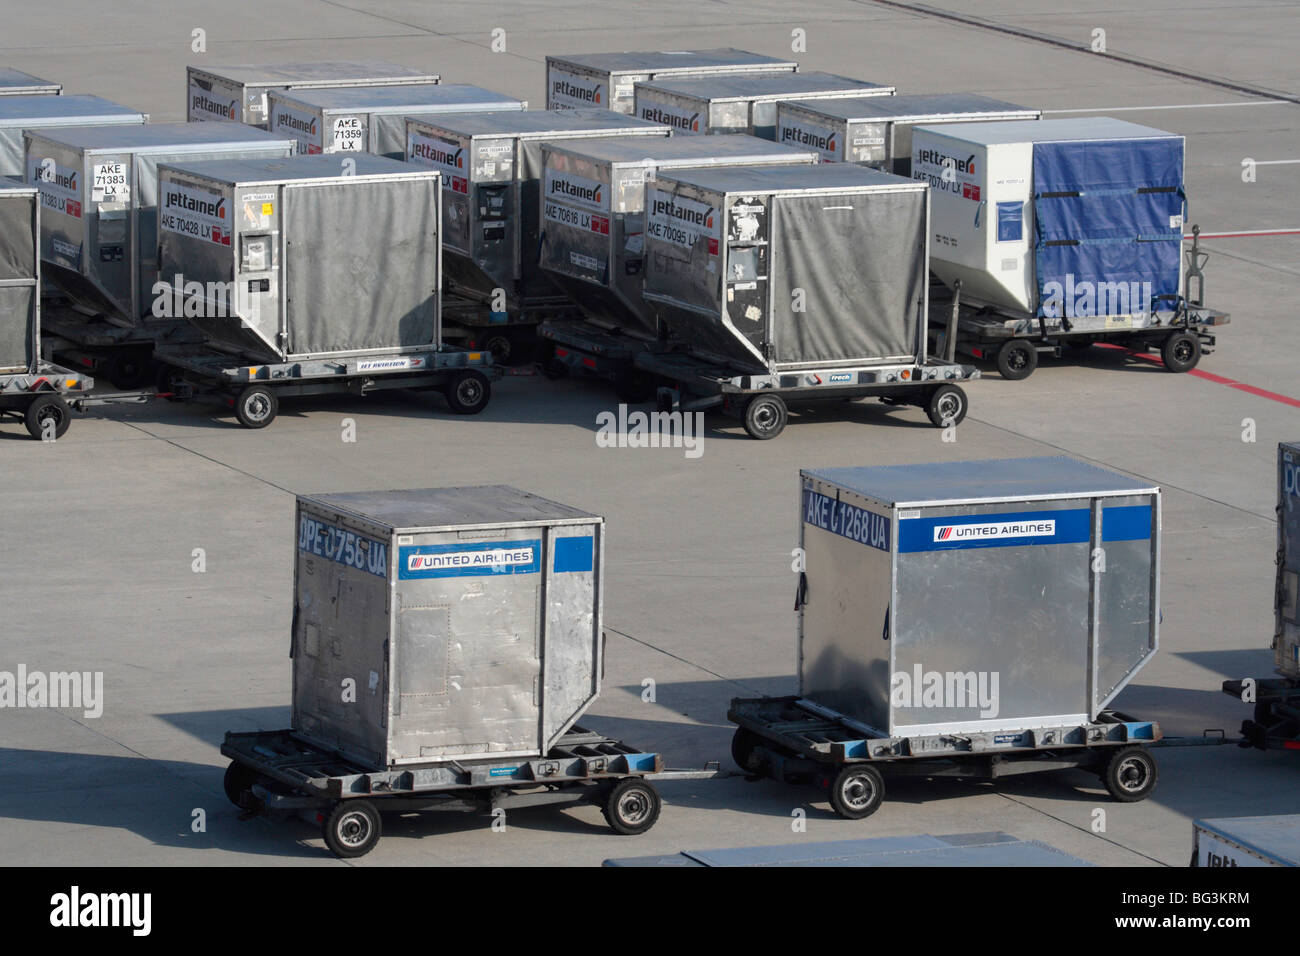 Commercial air freight transport logistics. Air cargo containers on the ramp or apron at an airport waiting for - Stock Image